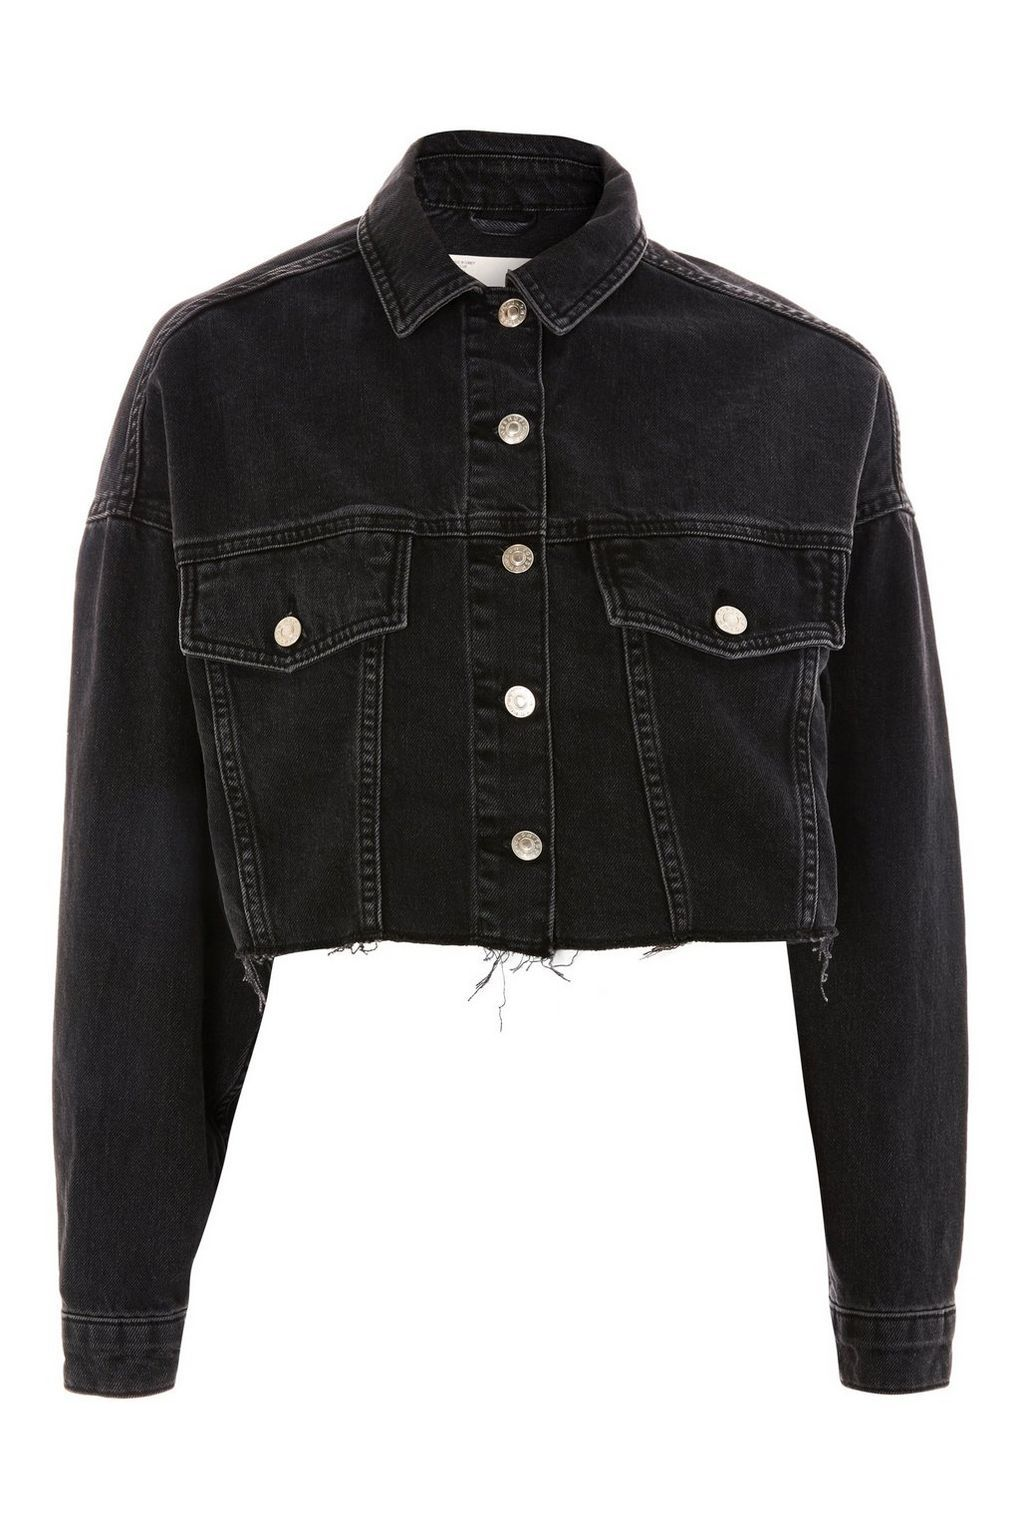 Hacked Off Cropped Denim Jacket  Denim  Clothing is part of Aesthetic Clothes Jackets - Hacked Off Cropped Denim Jacket